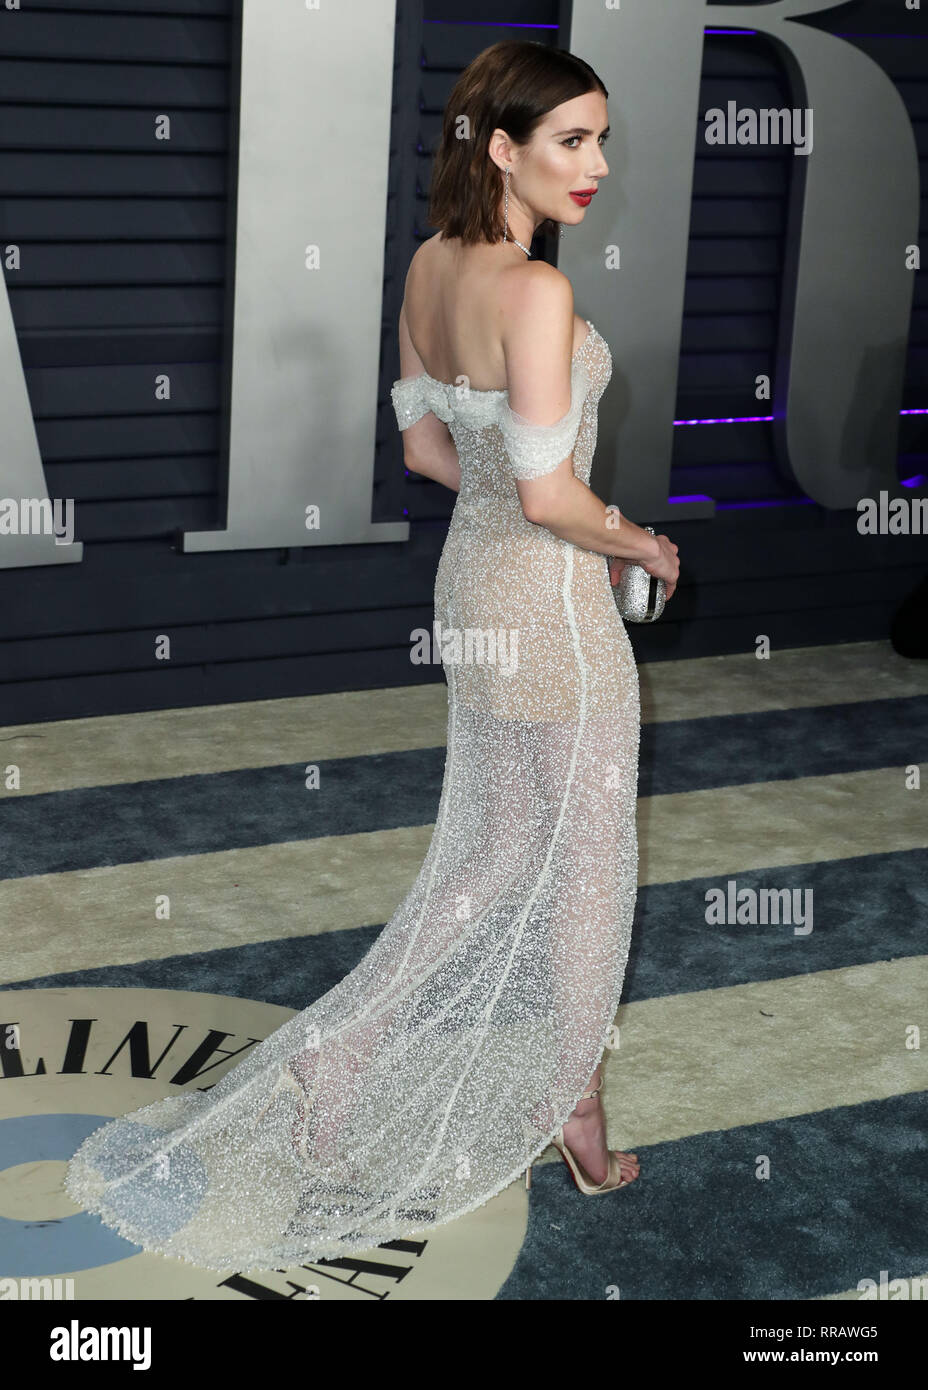 Beverly Hills Los Angeles Ca Usa February 24 Emma Roberts Arrives At The 2019 Vanity Fair Oscar Party Held At The Wallis Annenberg Center For The Performing Arts On February 24